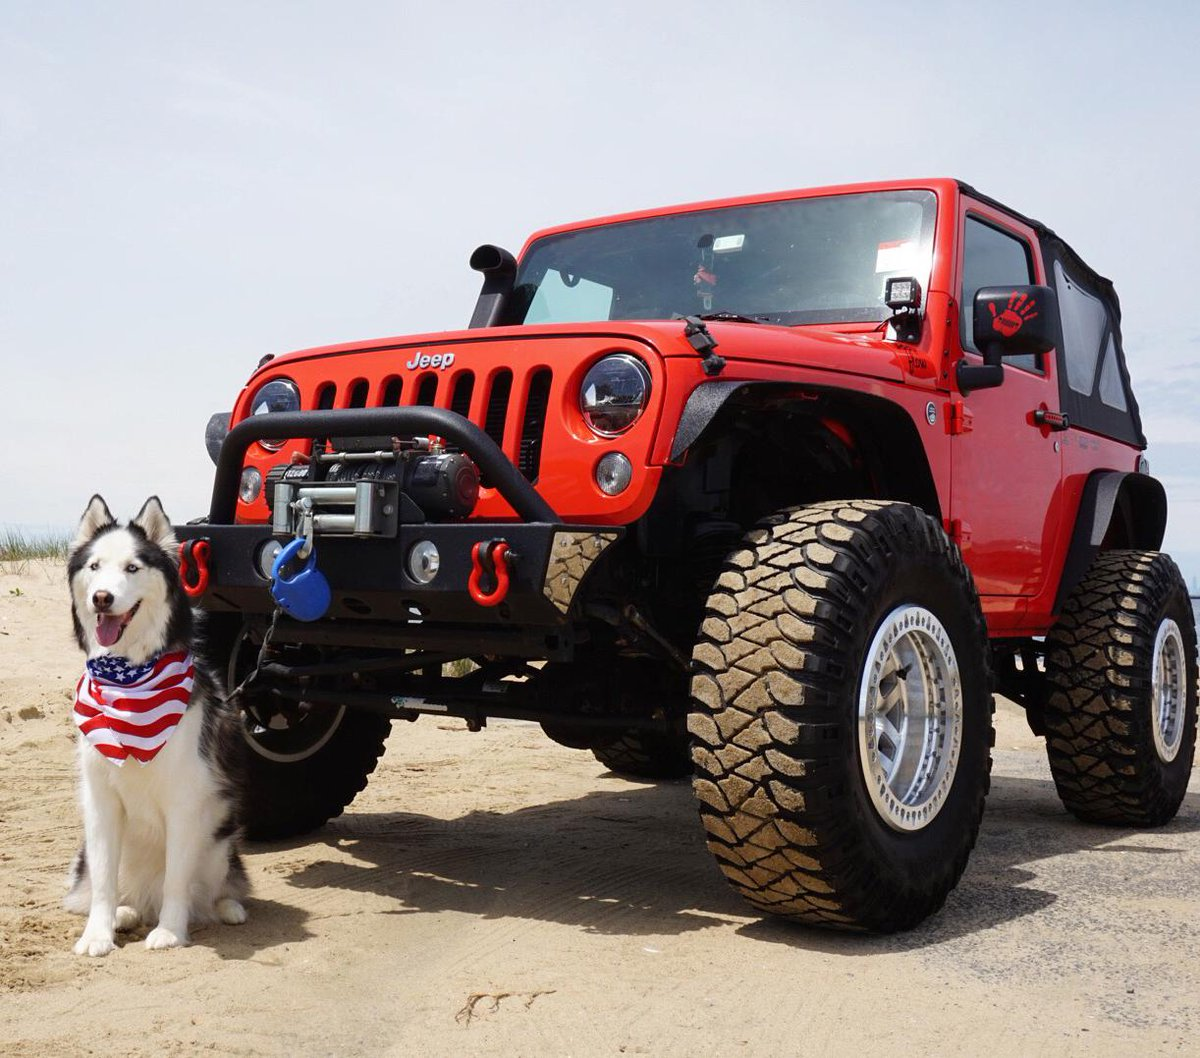 Hang with the big dogs. #Jeep 📸: Melissa L.